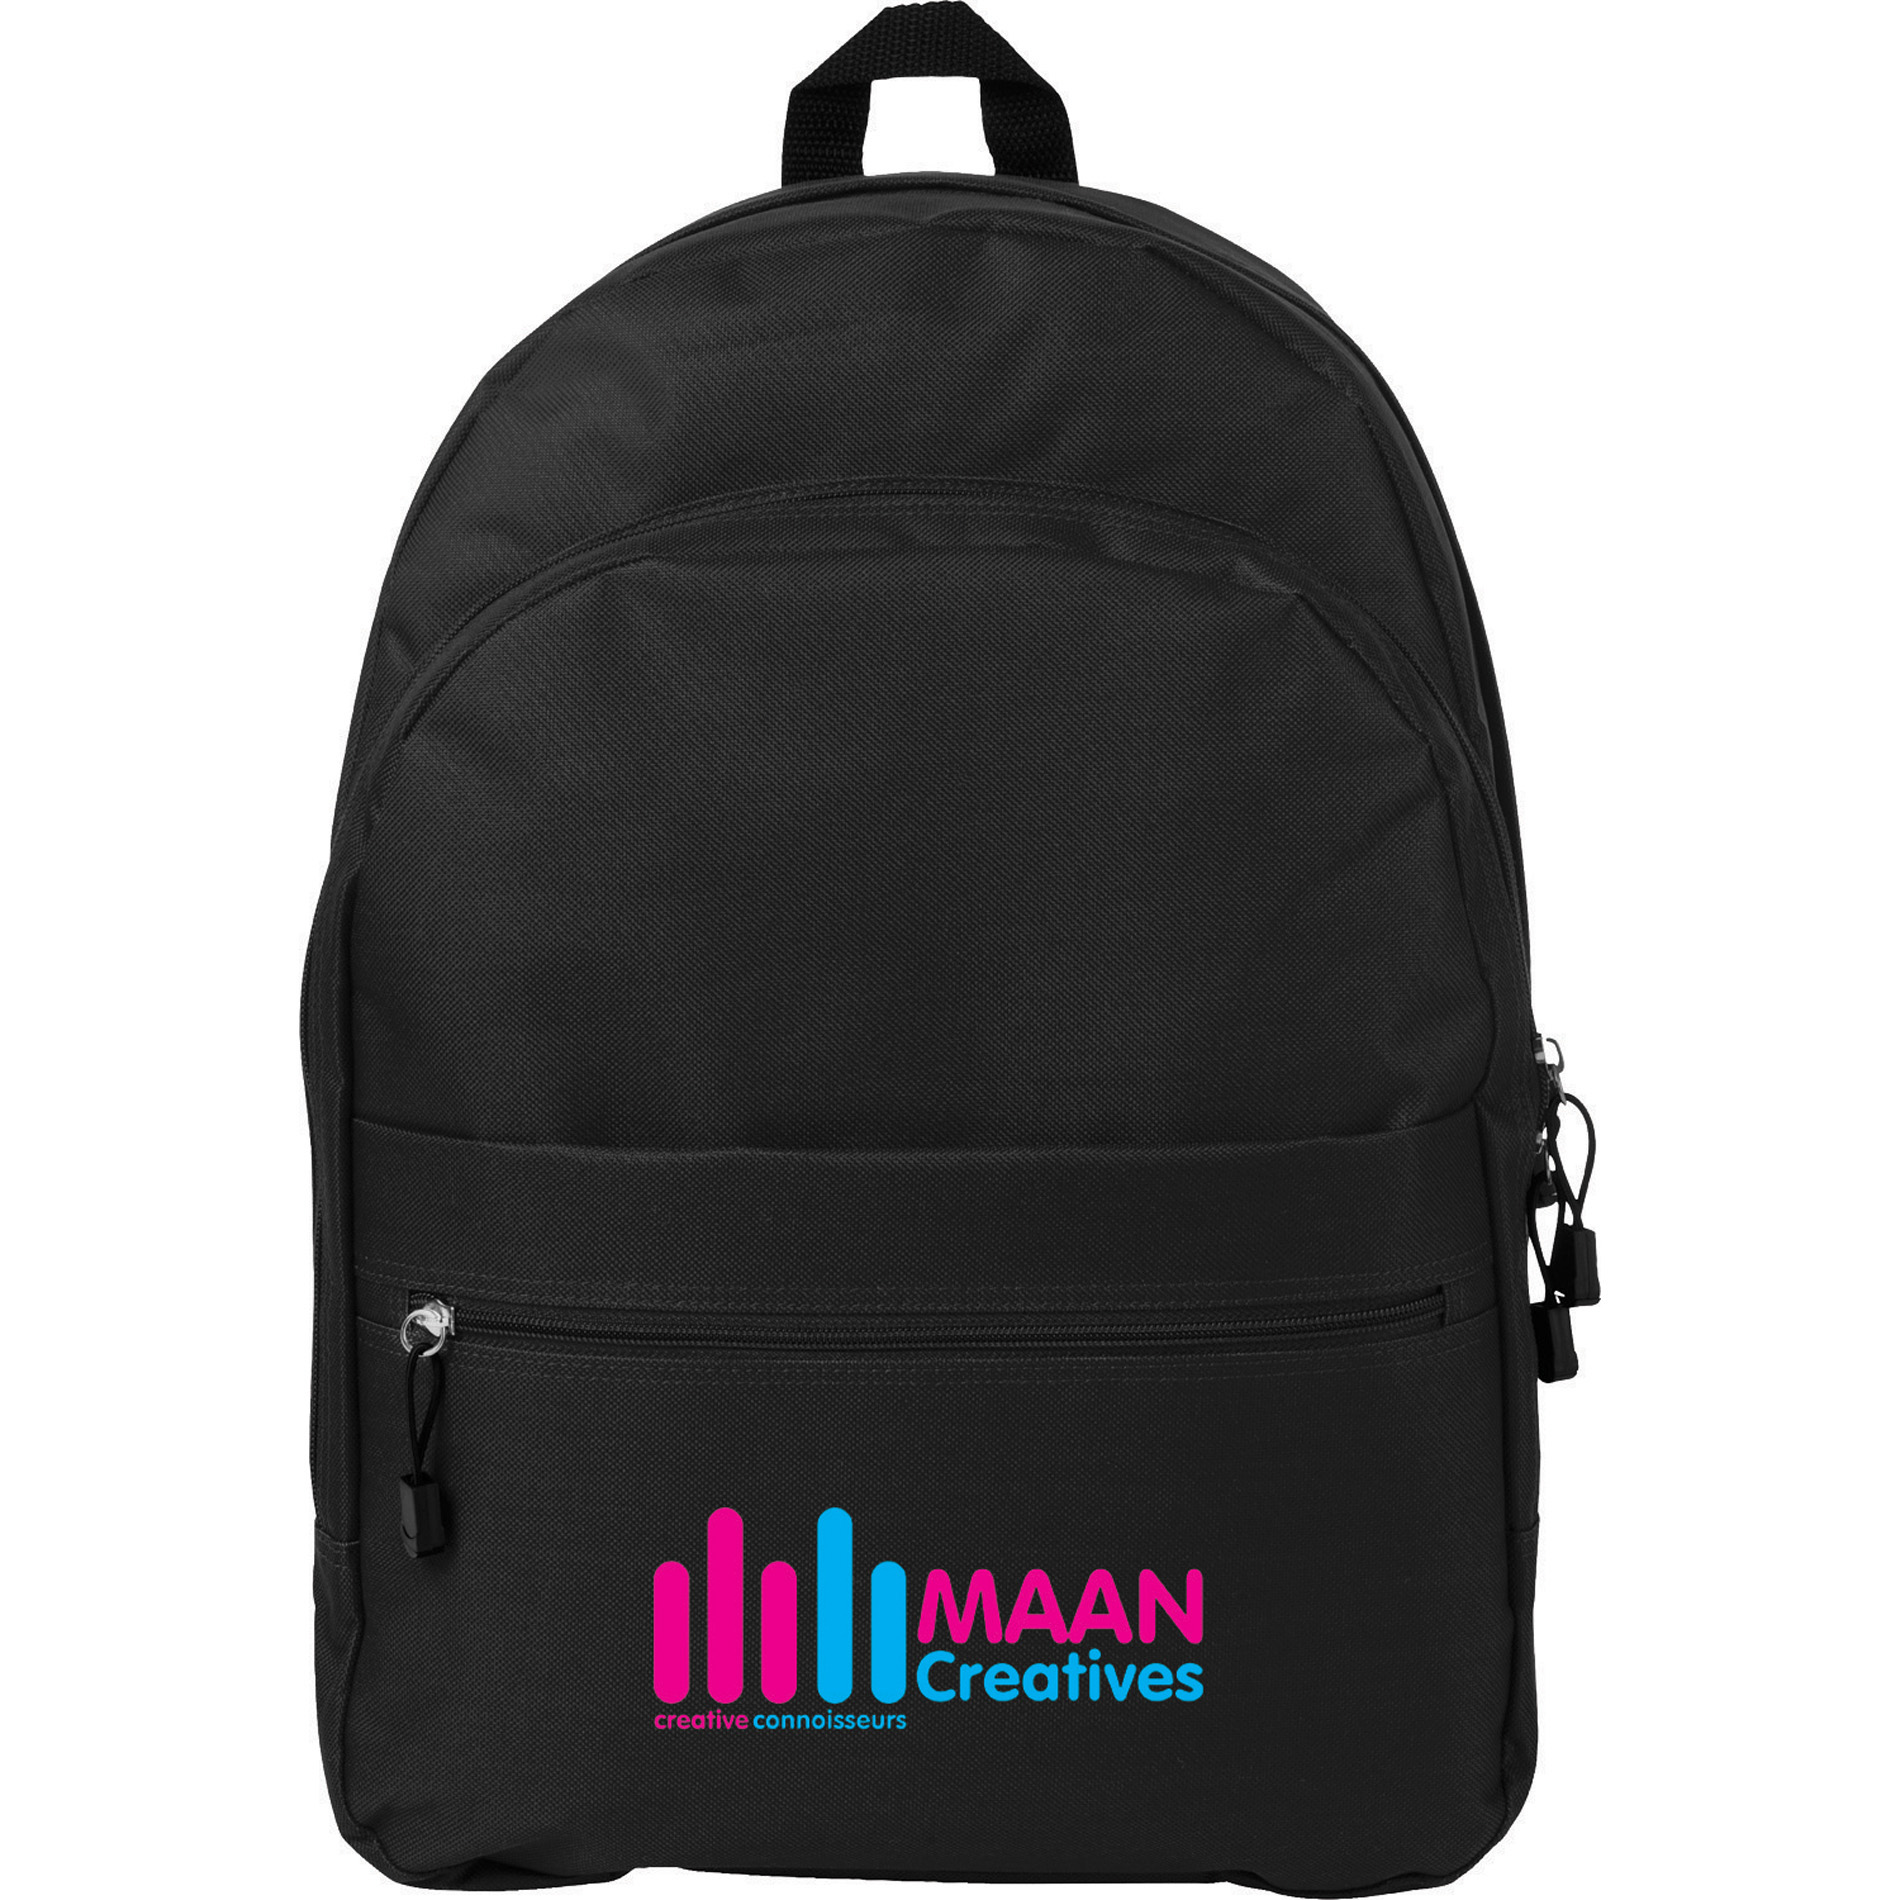 The Campus Backpack Image 2